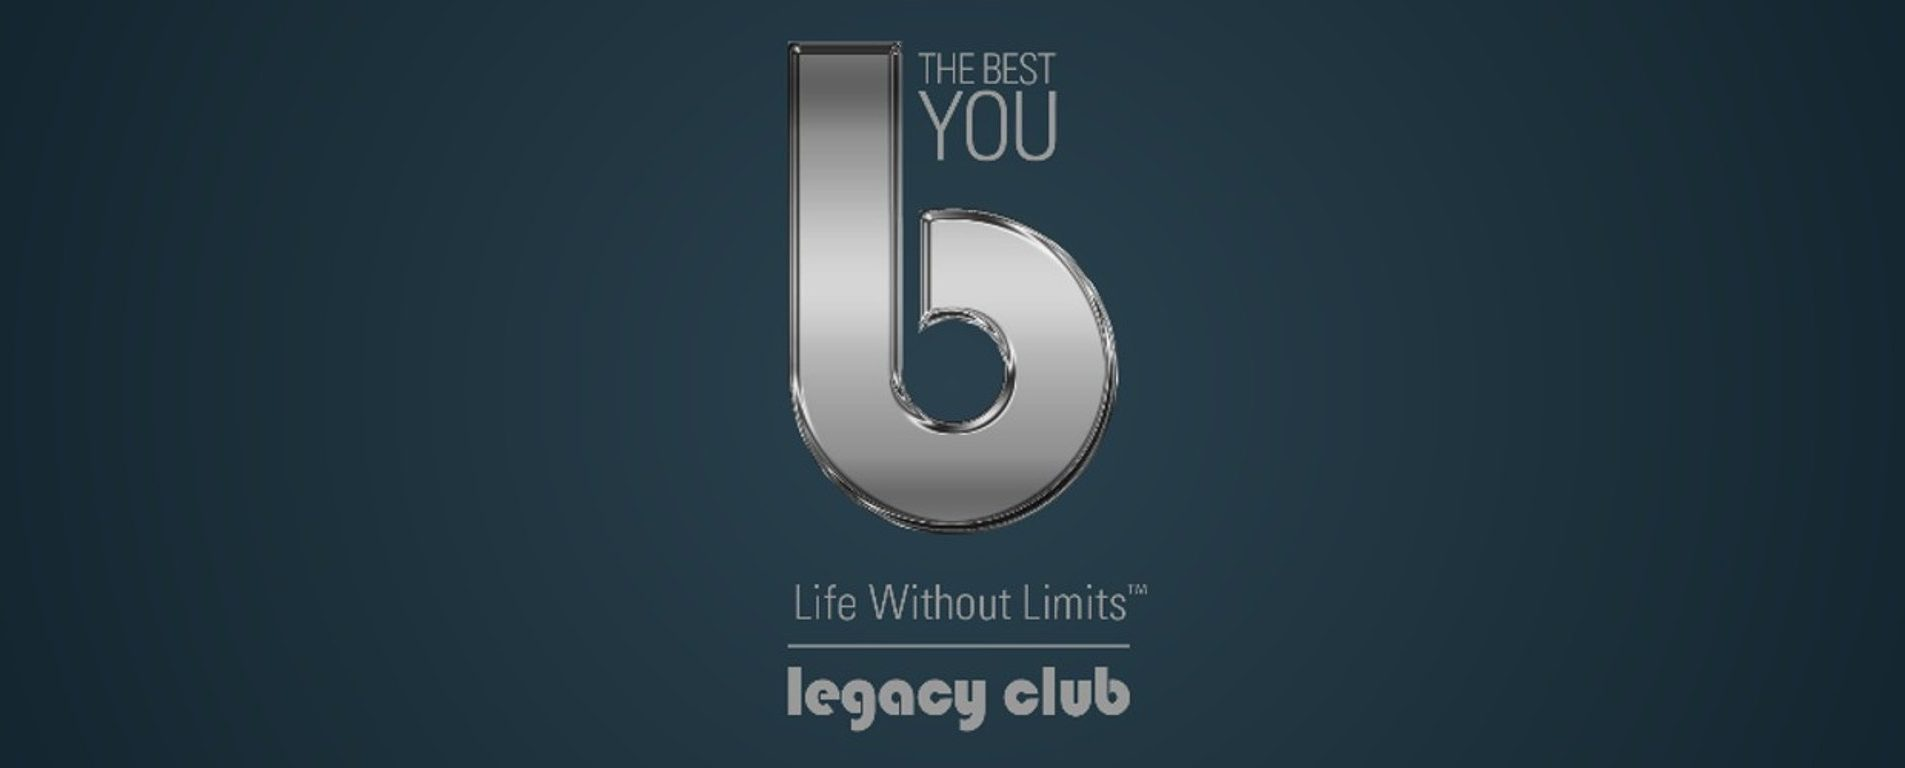 The Best You Legacy Club - banner